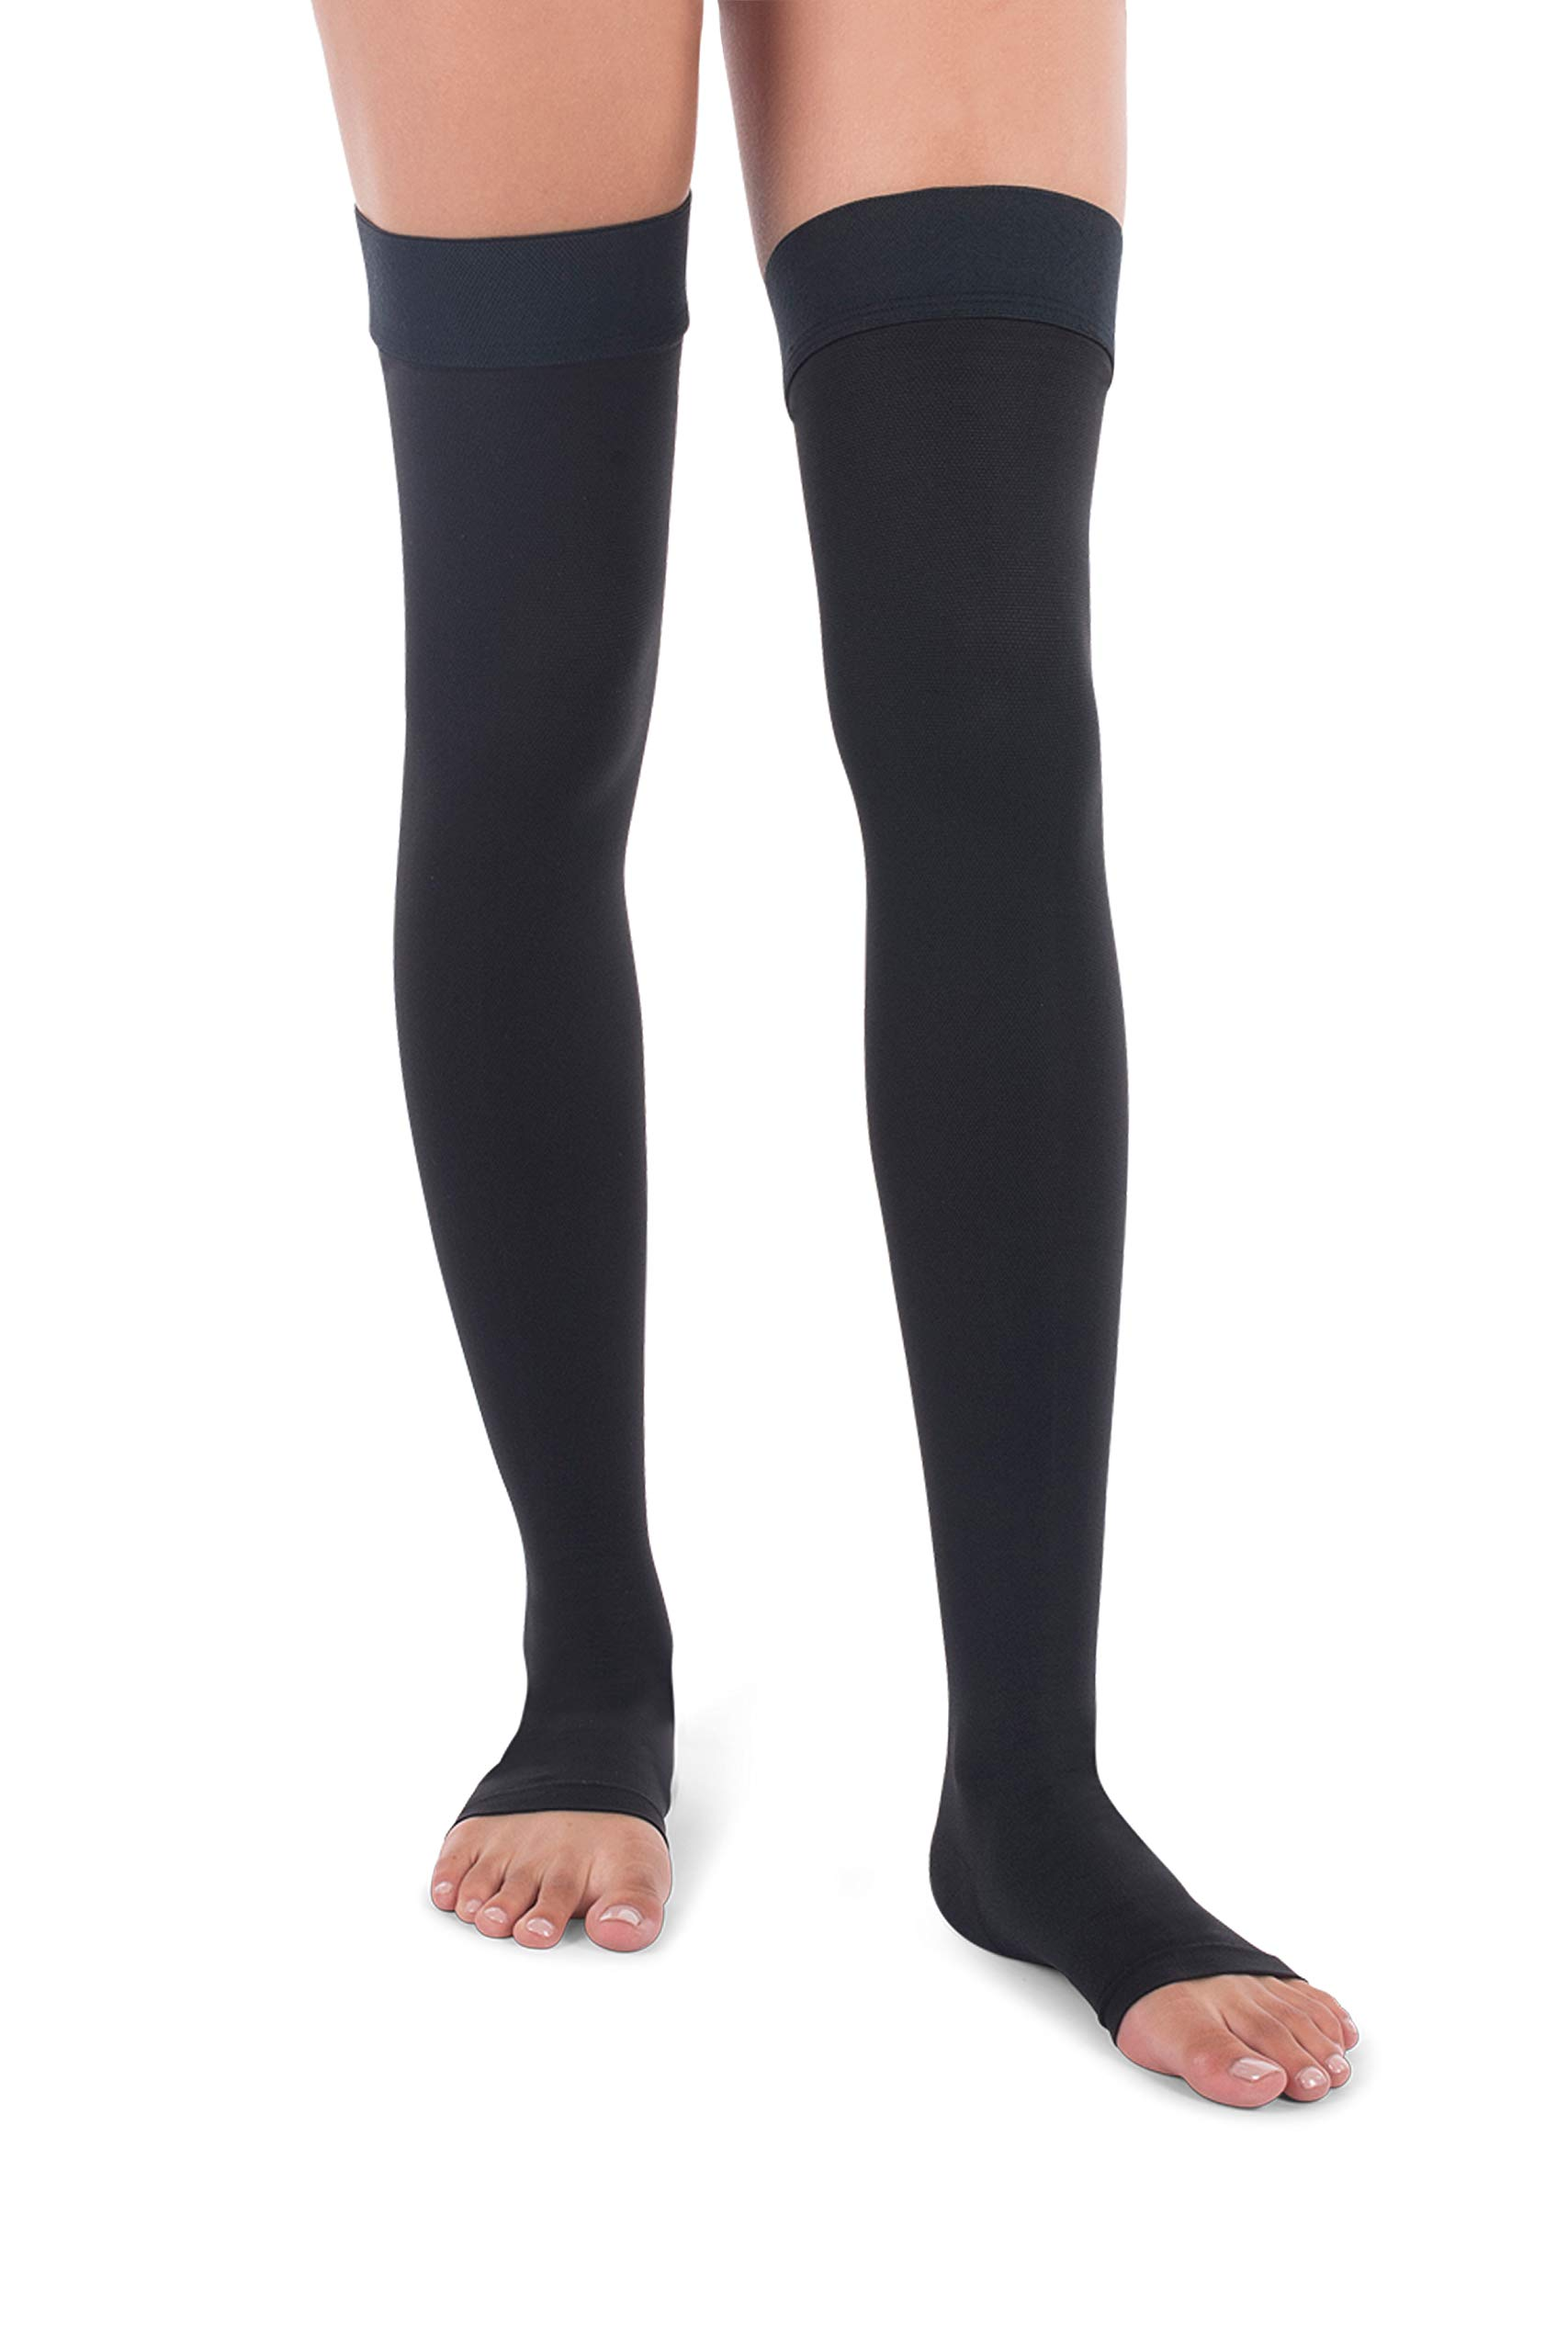 Jomi Compression Thigh High Stockings Collection, 30-40mmHg Surgical Weight Open Toe 341 (Small, Black)